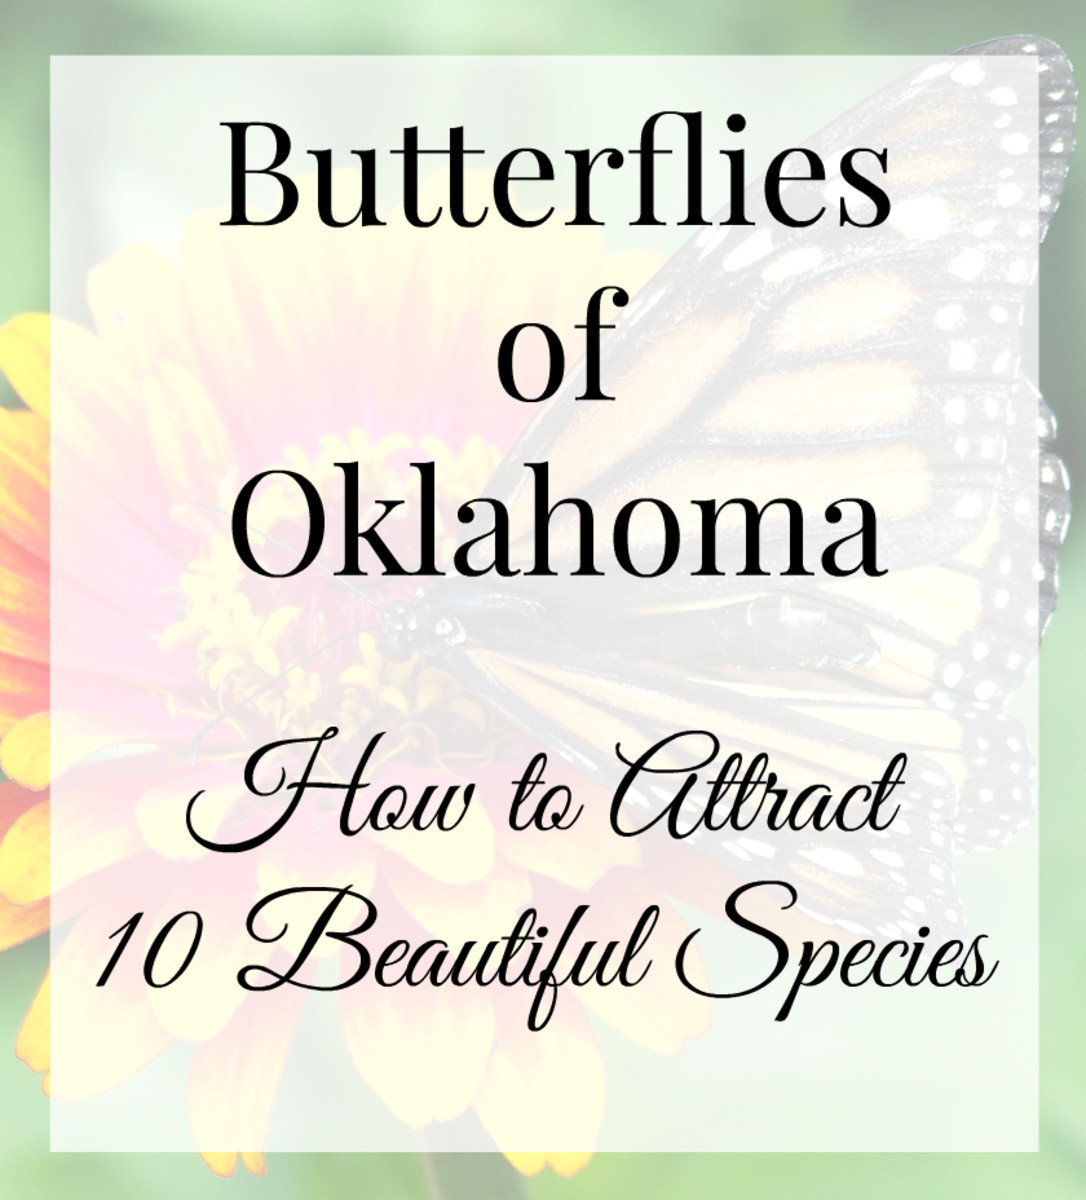 Butterflies of Oklahoma:  Ten Beautiful Species and How To Attract Them